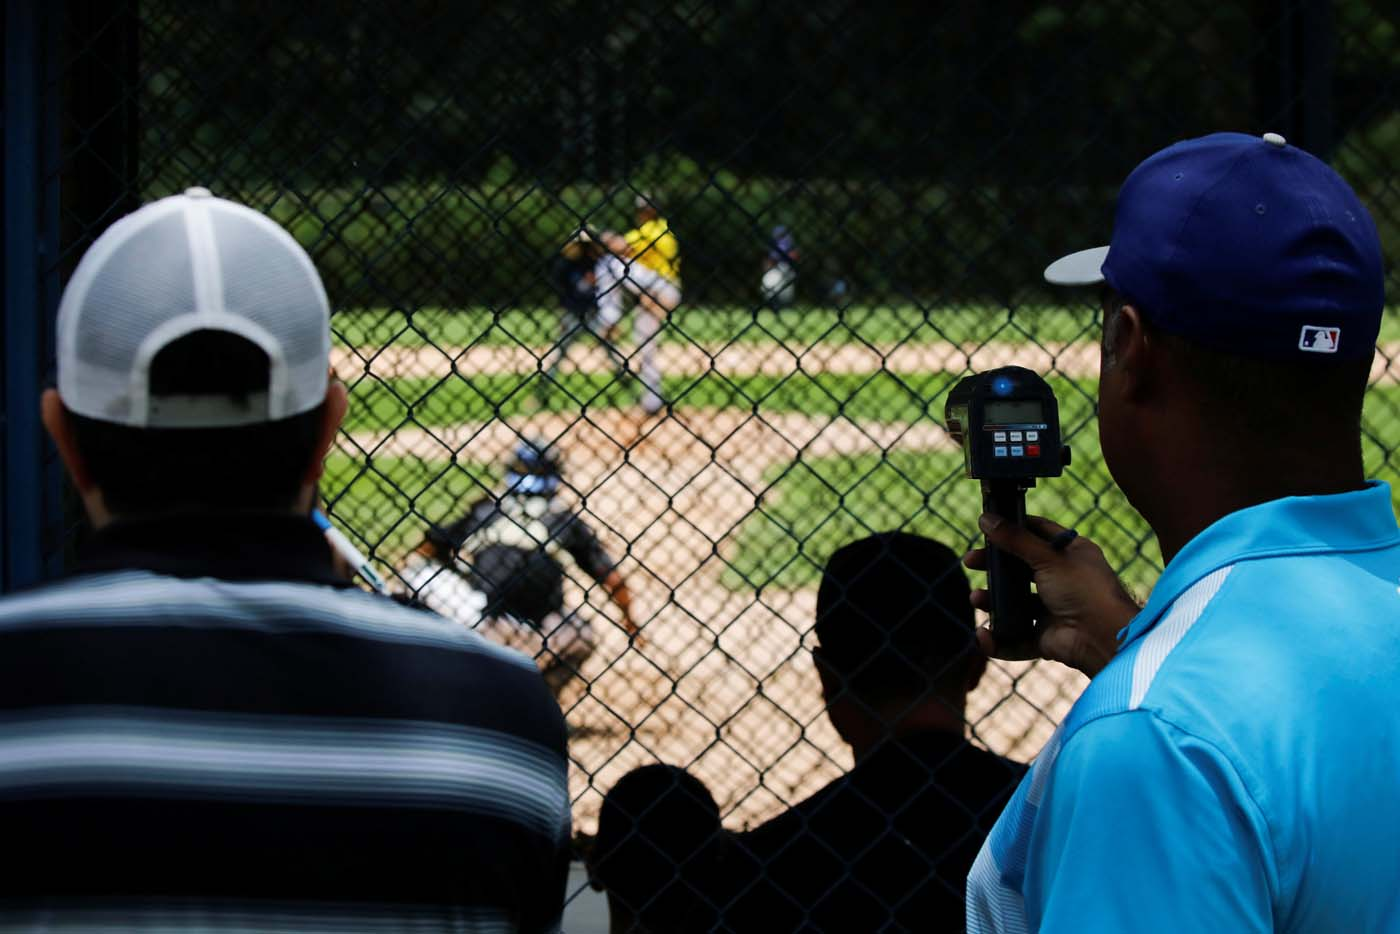 Trainers and scouts look at players during a baseball showcase in Caracas, Venezuela August 22, 2017. Picture taken August 22, 2017. REUTERS/Carlos Garcia Rawlins